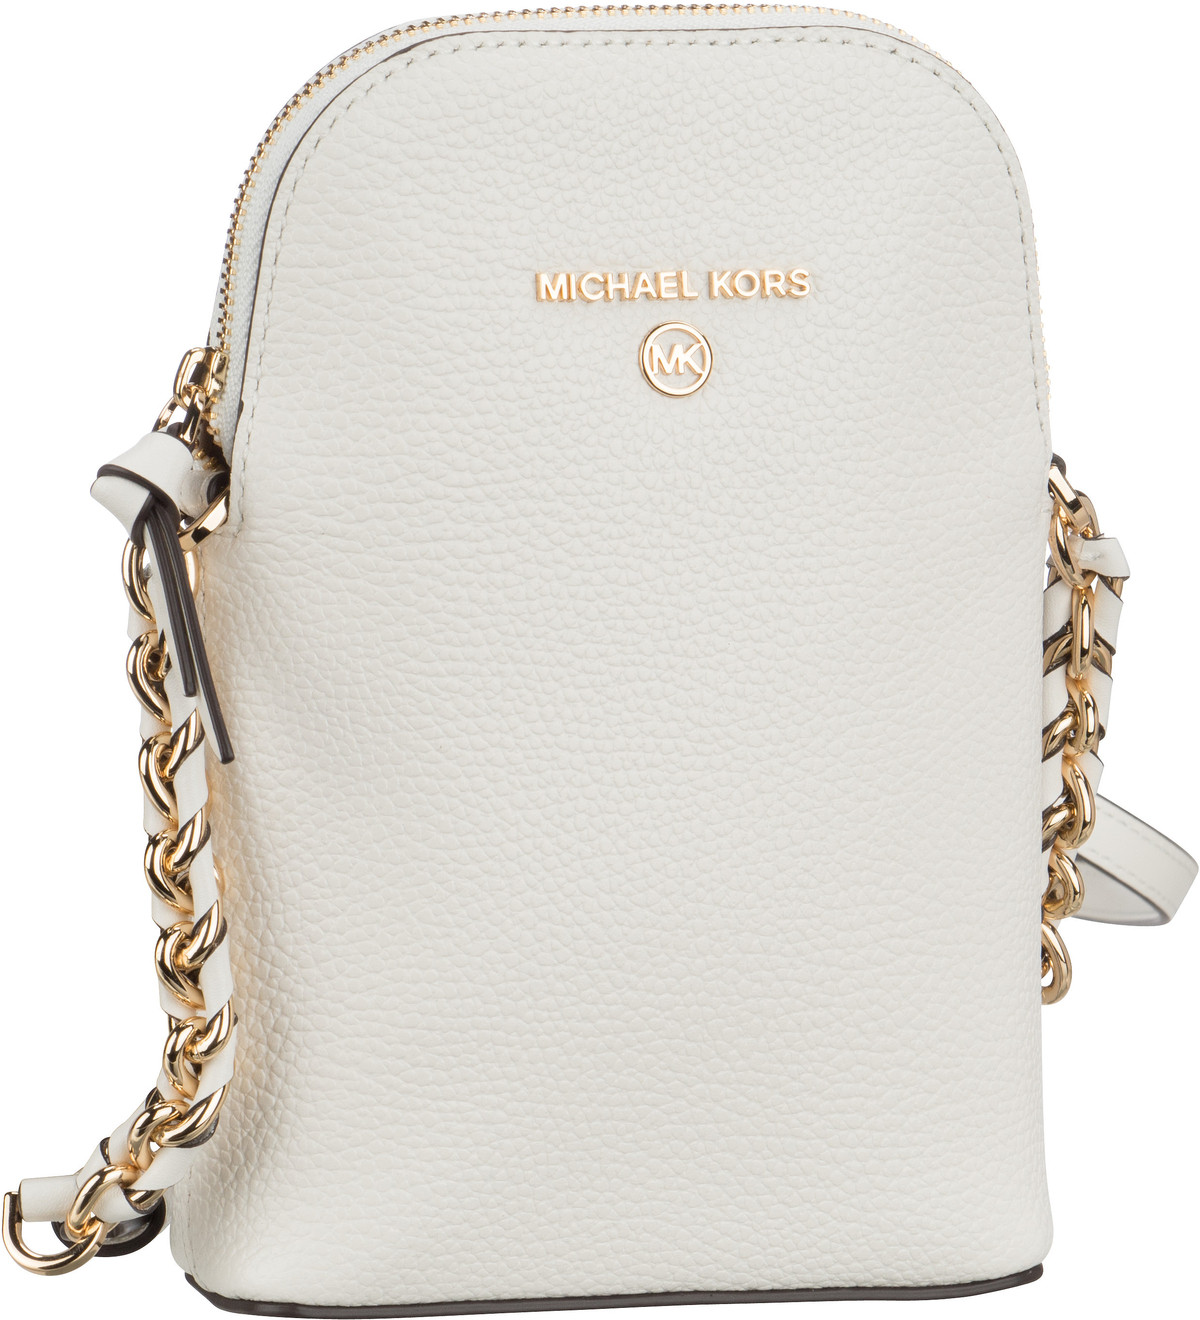 Michael Kors Umhängetasche Jet Set Charm Chain Phone Xbody Optic White